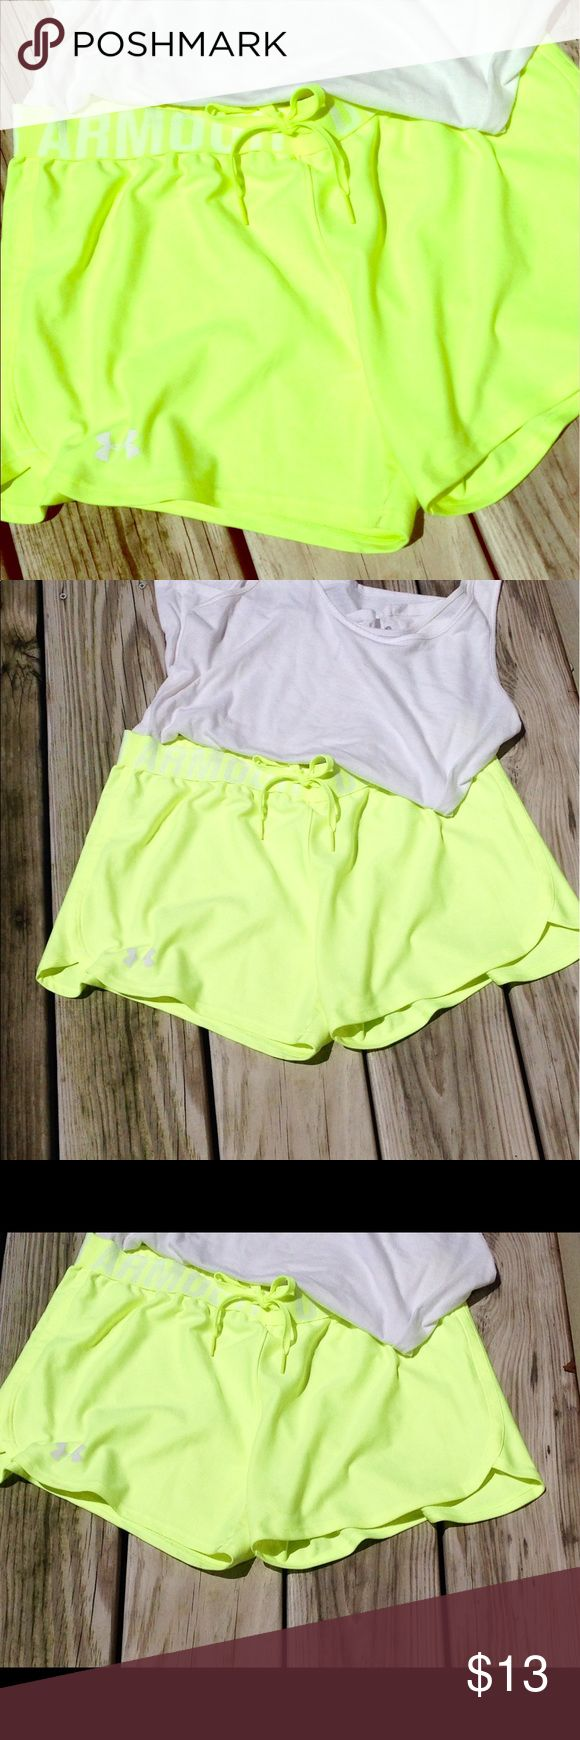 Under Armour neon yellow shorts Bright and bold. Drawstring with wide elastic waistband. Workout ready! Under Armour Shorts